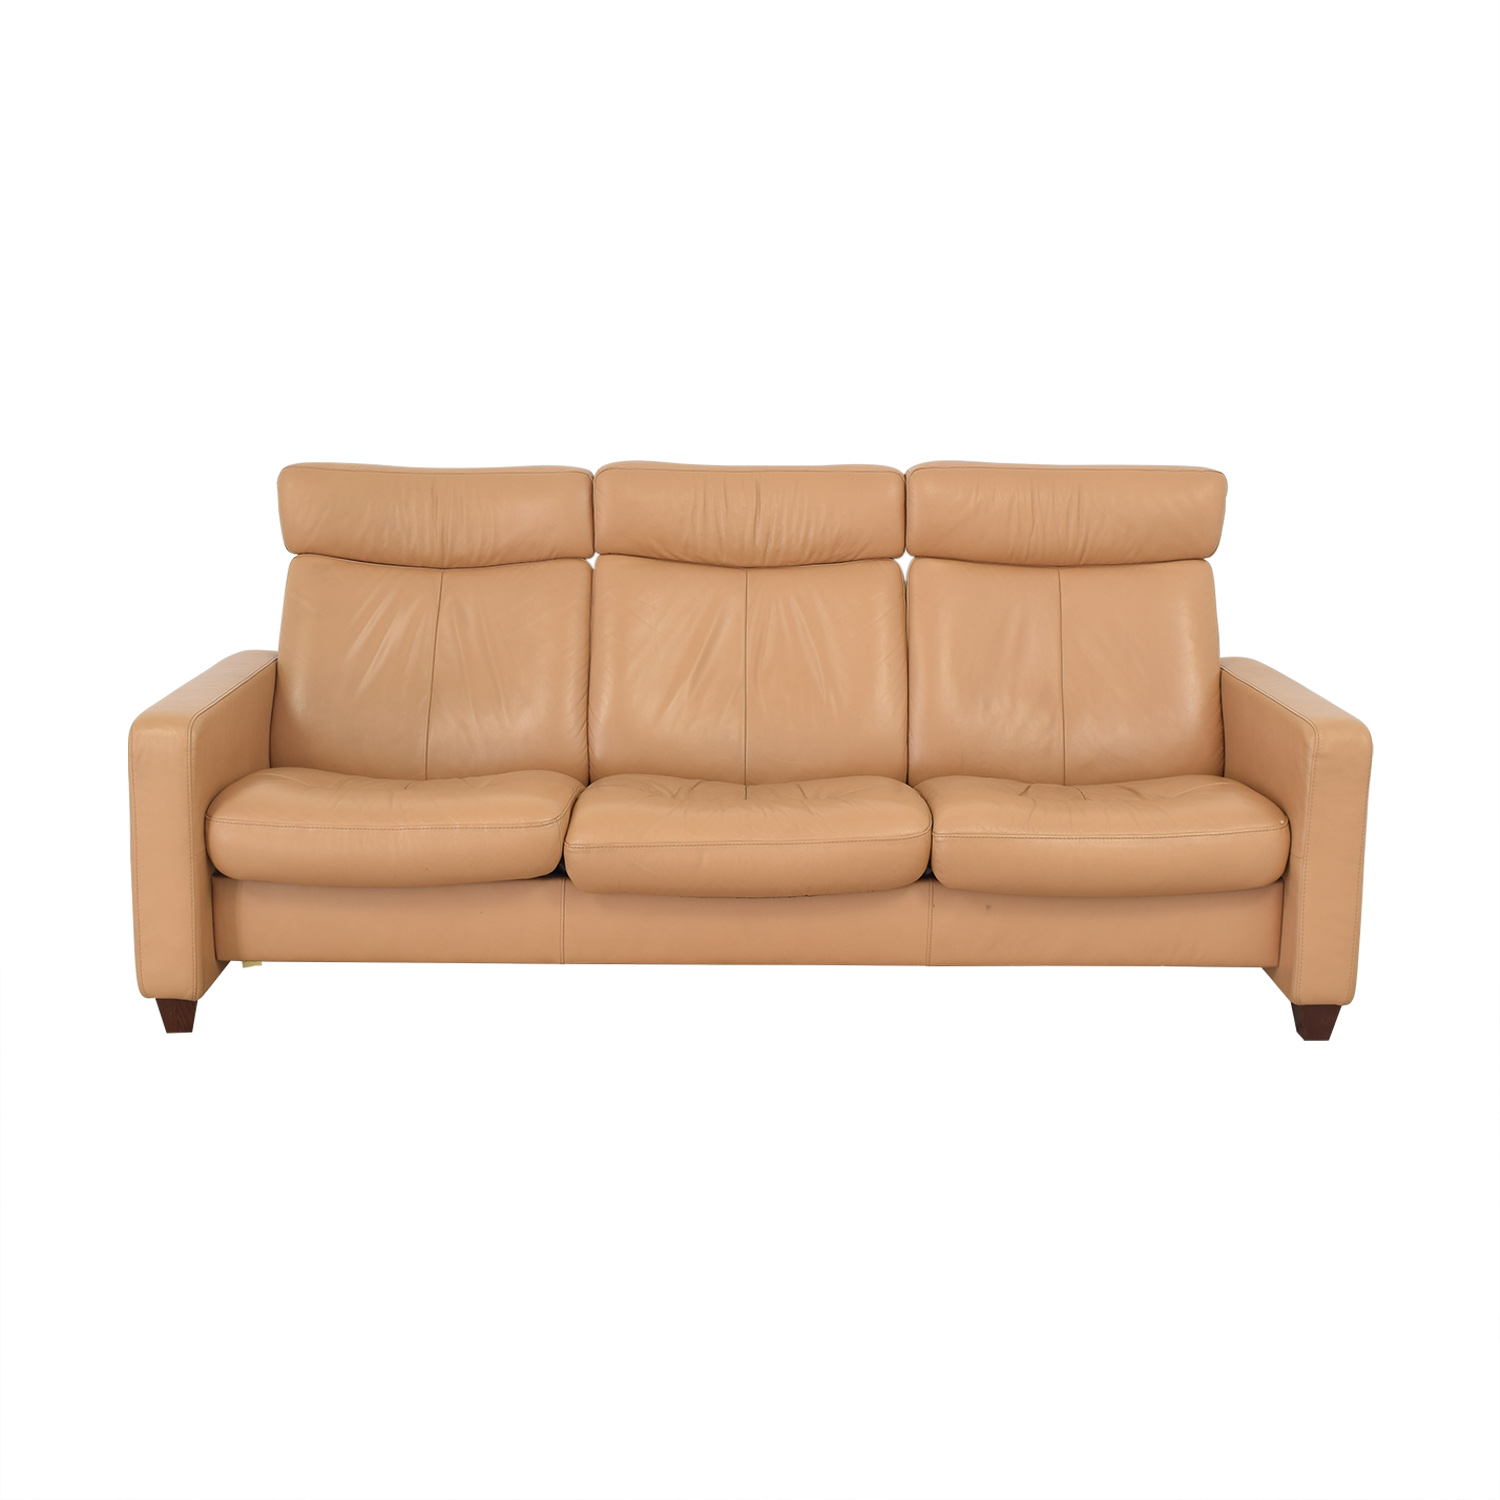 buy Ekornes Stressless Sofa Ekornes